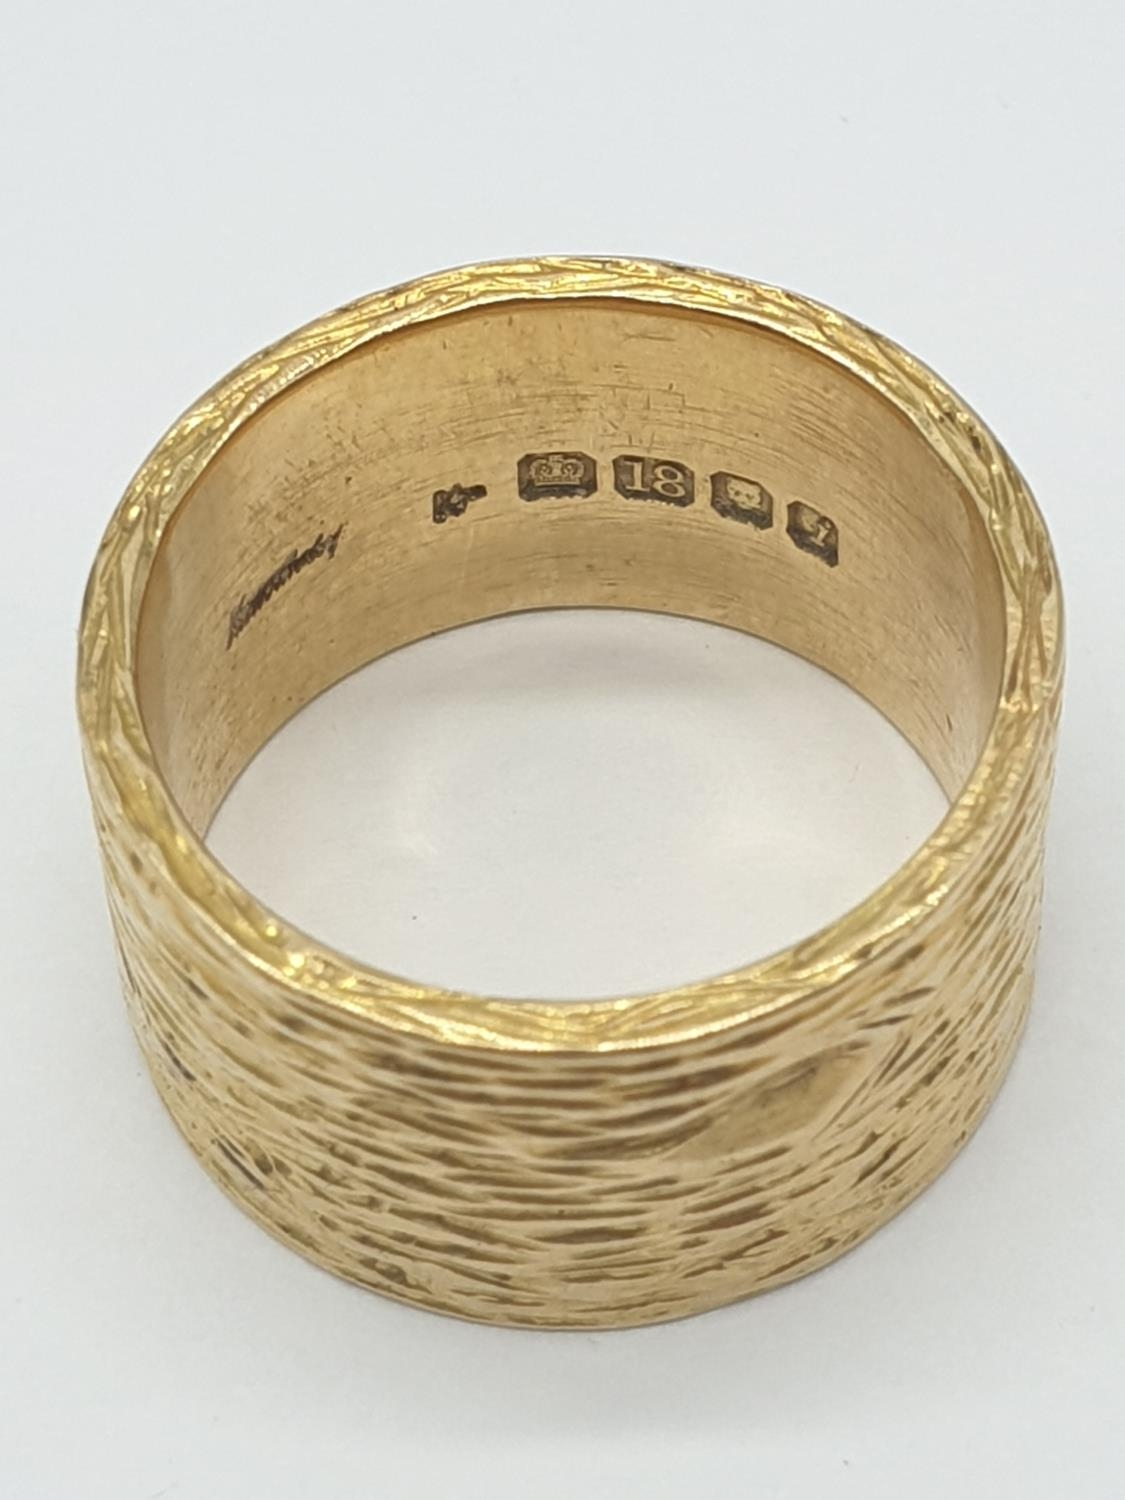 18ct gold wide band ring with grained pattern, weight 14.4g and size O - Image 4 of 4